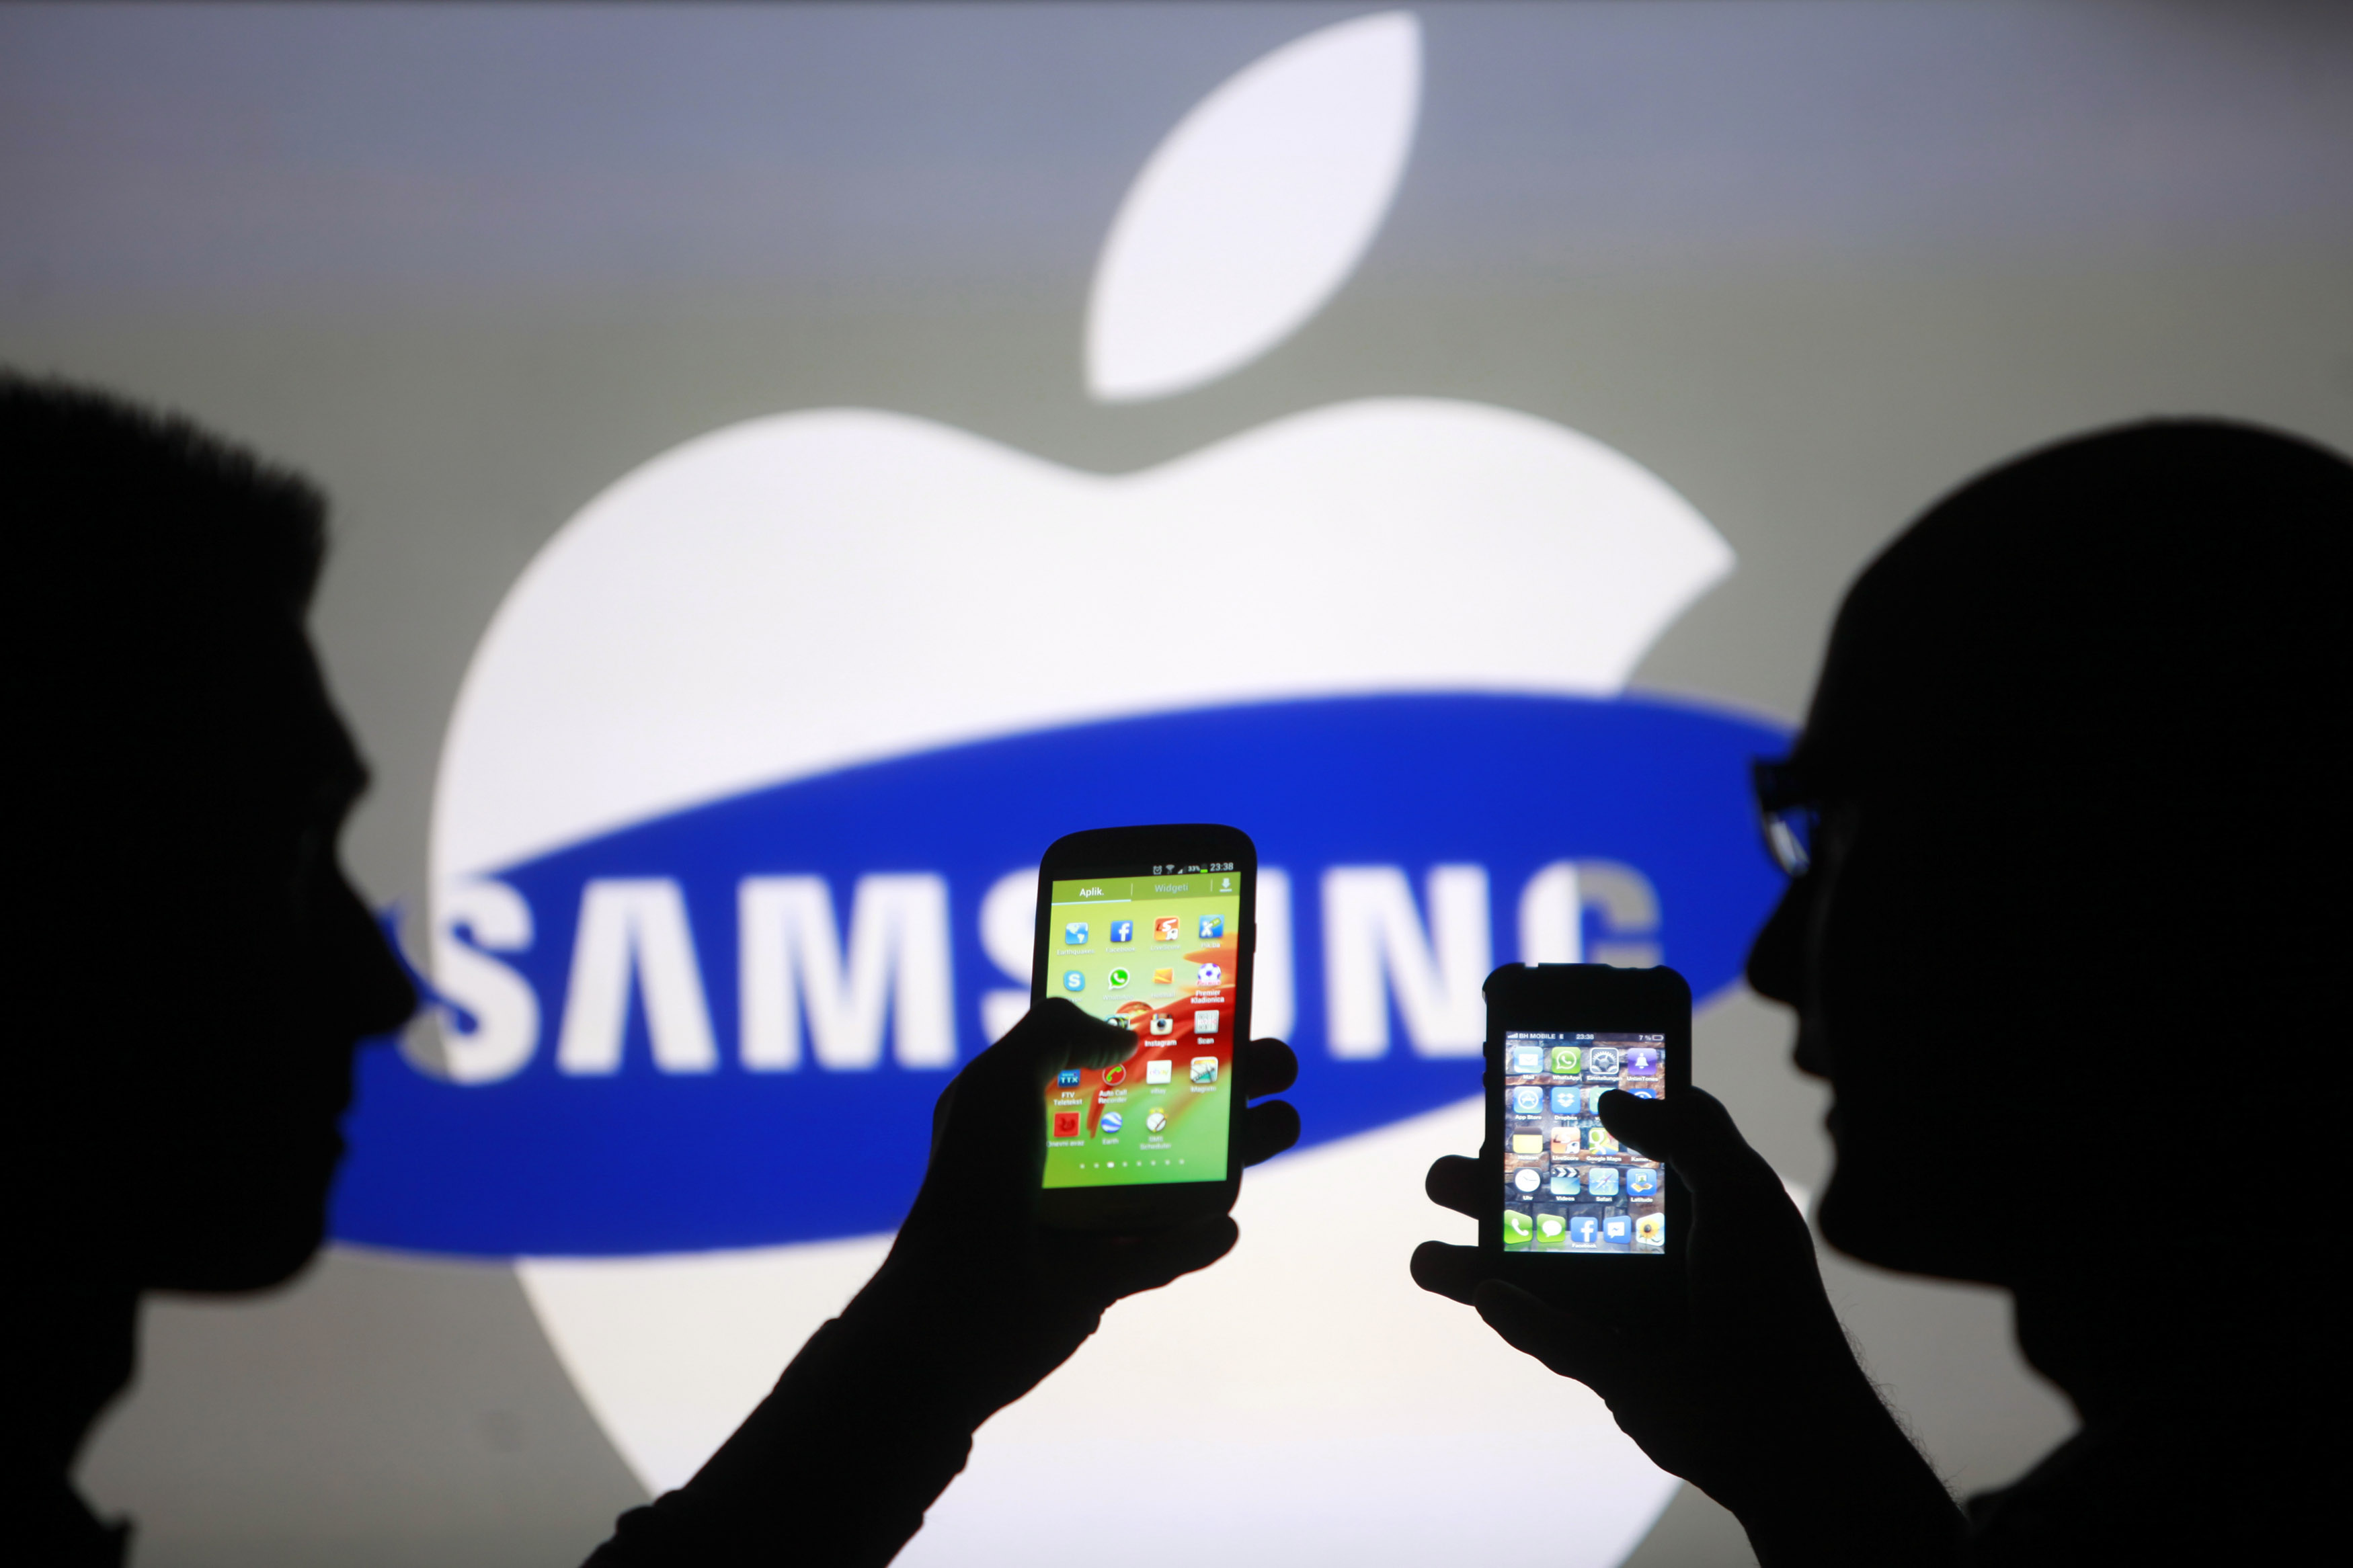 Men are silhouetted against a video screen as they pose with Samsung Galaxy S3 and iPhone 4 smartphones in this photo illustration taken in the central Bosnian town of Zenica, May 17, 2013. REUTERS/Dado Ruvic (BOSNIA AND HERZEGOVINA - Tags: BUSINESS TELECOMS) - RTXZQ3W